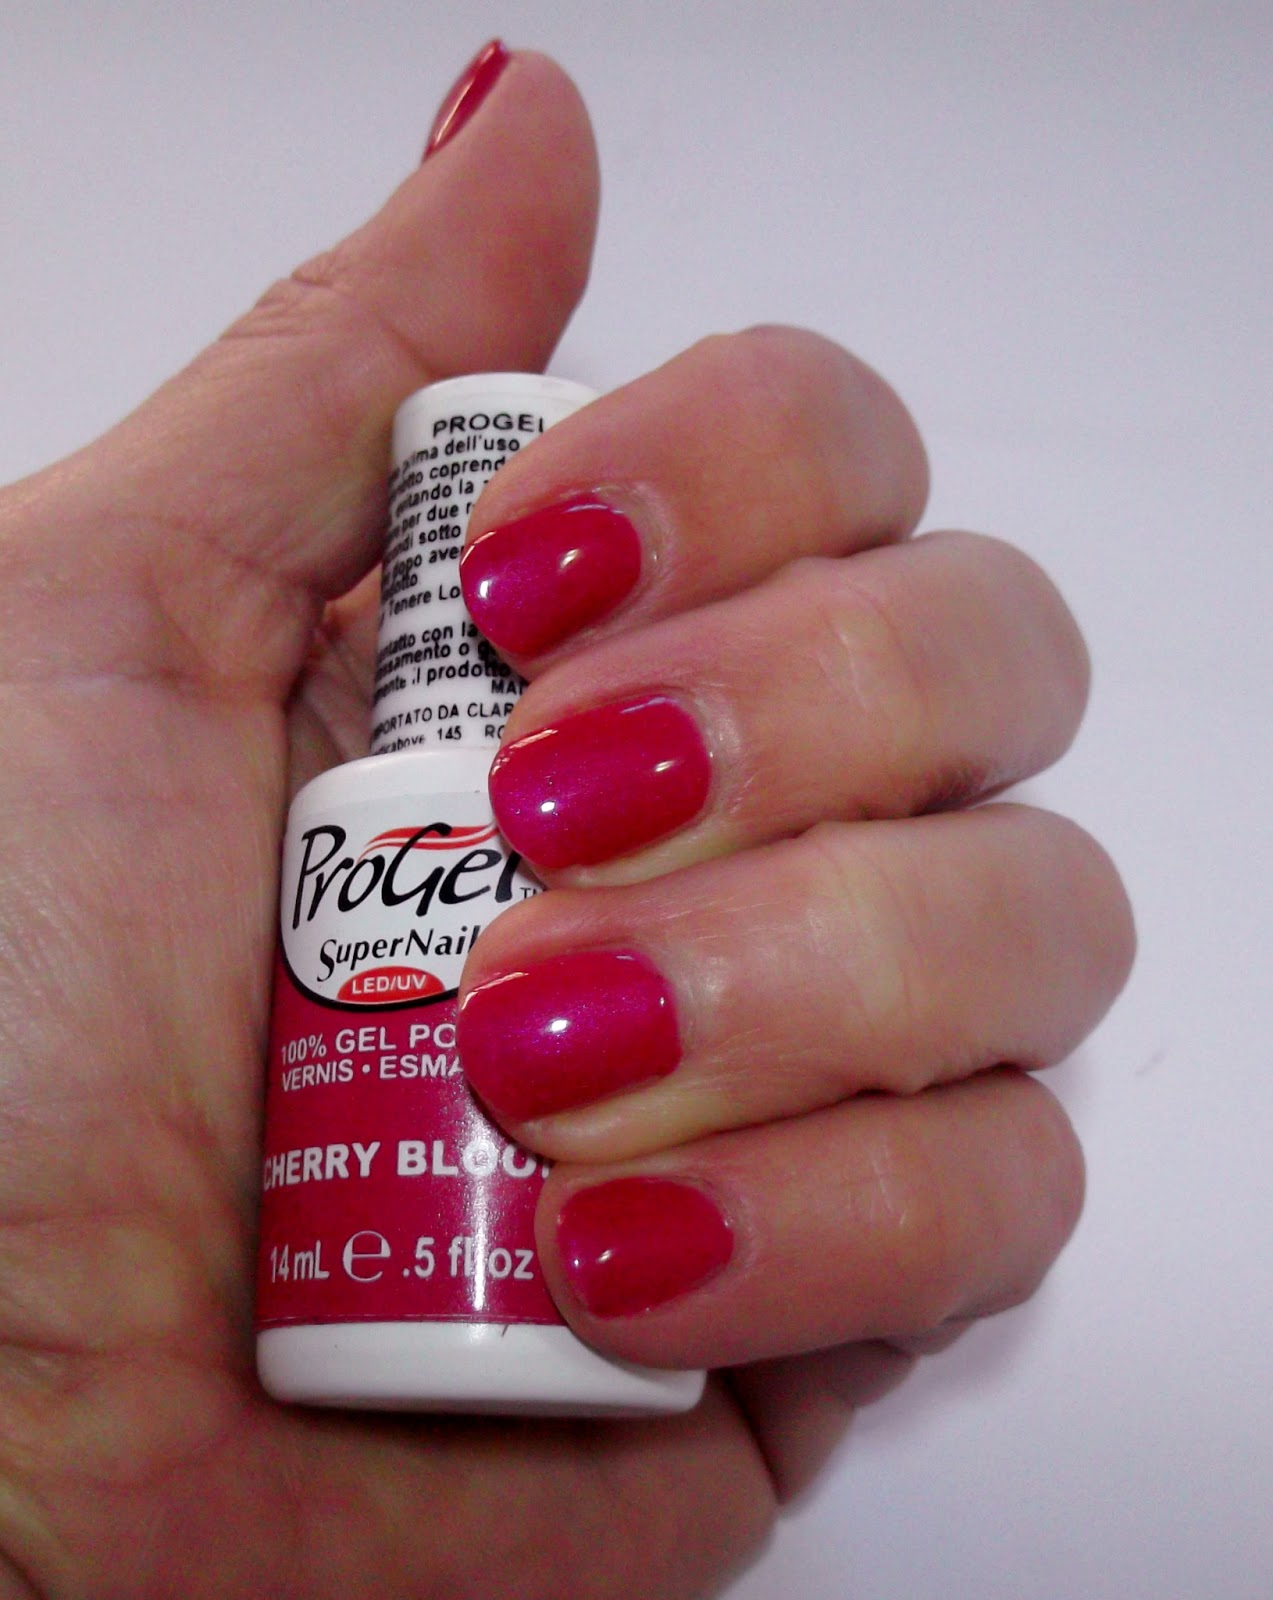 SuperNail: ProGel Smalto Semipermanente Cherry Bloom By